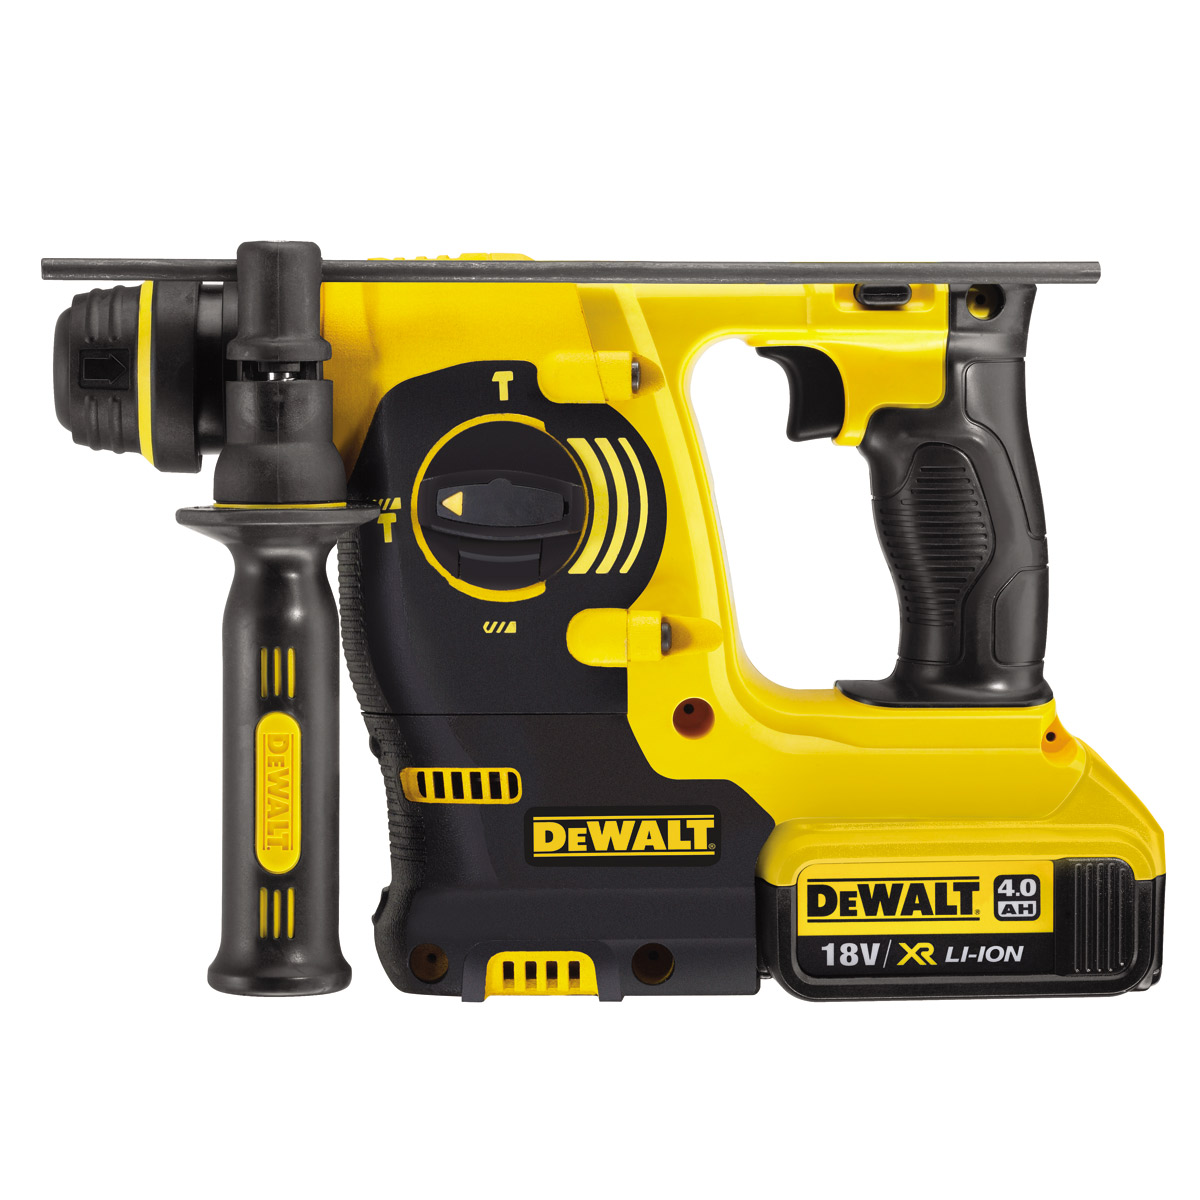 dewalt d25501k sds max combination hammer drill 5kg 240v. Black Bedroom Furniture Sets. Home Design Ideas